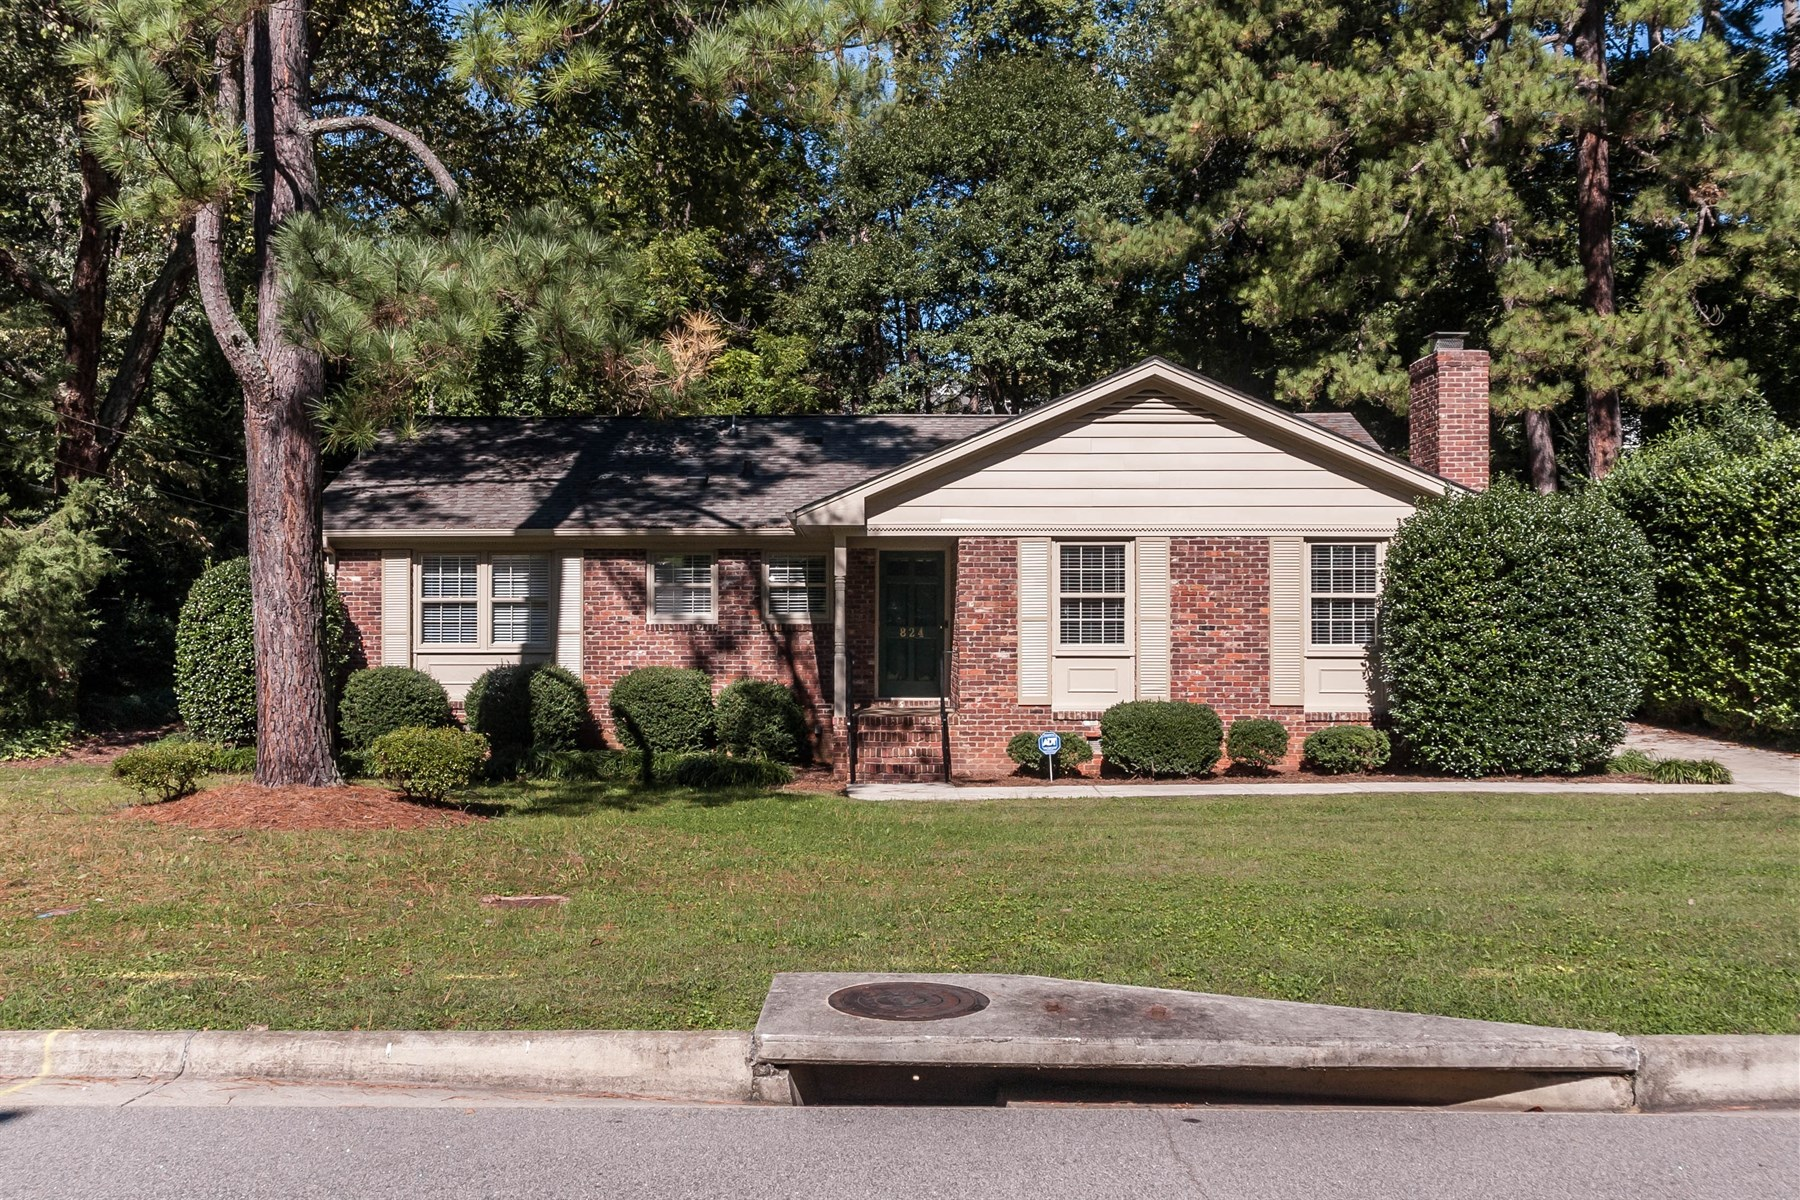 Single Family Home for Sale at Charming North Hills Ranch 824 Davidson Street Raleigh, North Carolina 27609 United States